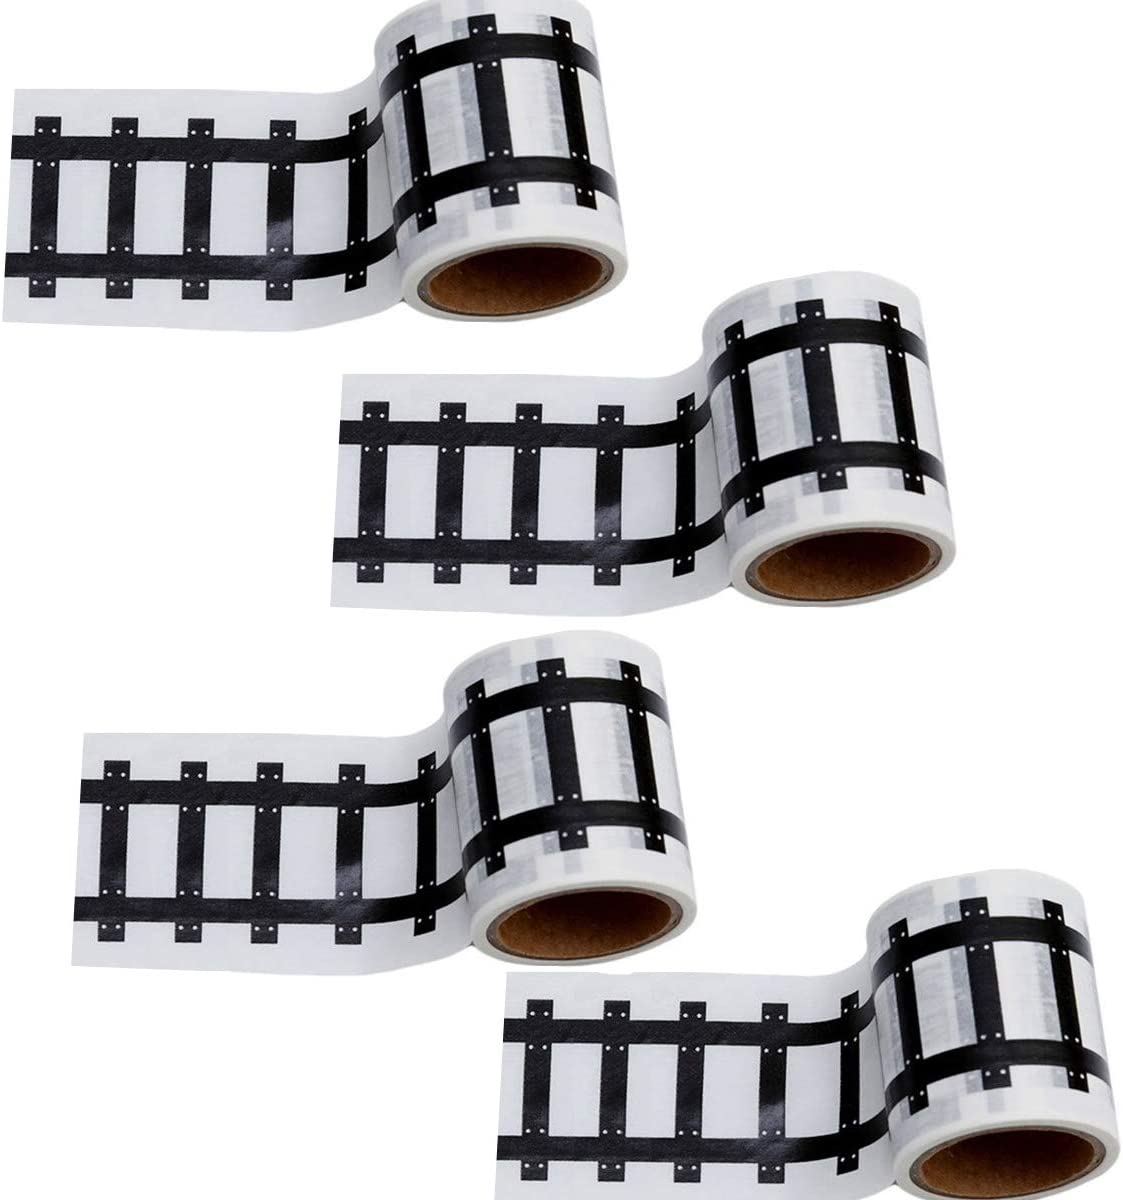 Race Car Track Road Tape Kids Toy Car Party Tape-Sticker Roll for Cars Track and Train Sets, Stick to Floors and Walls, Quick Cleanup (Railway, 4 Rolls)